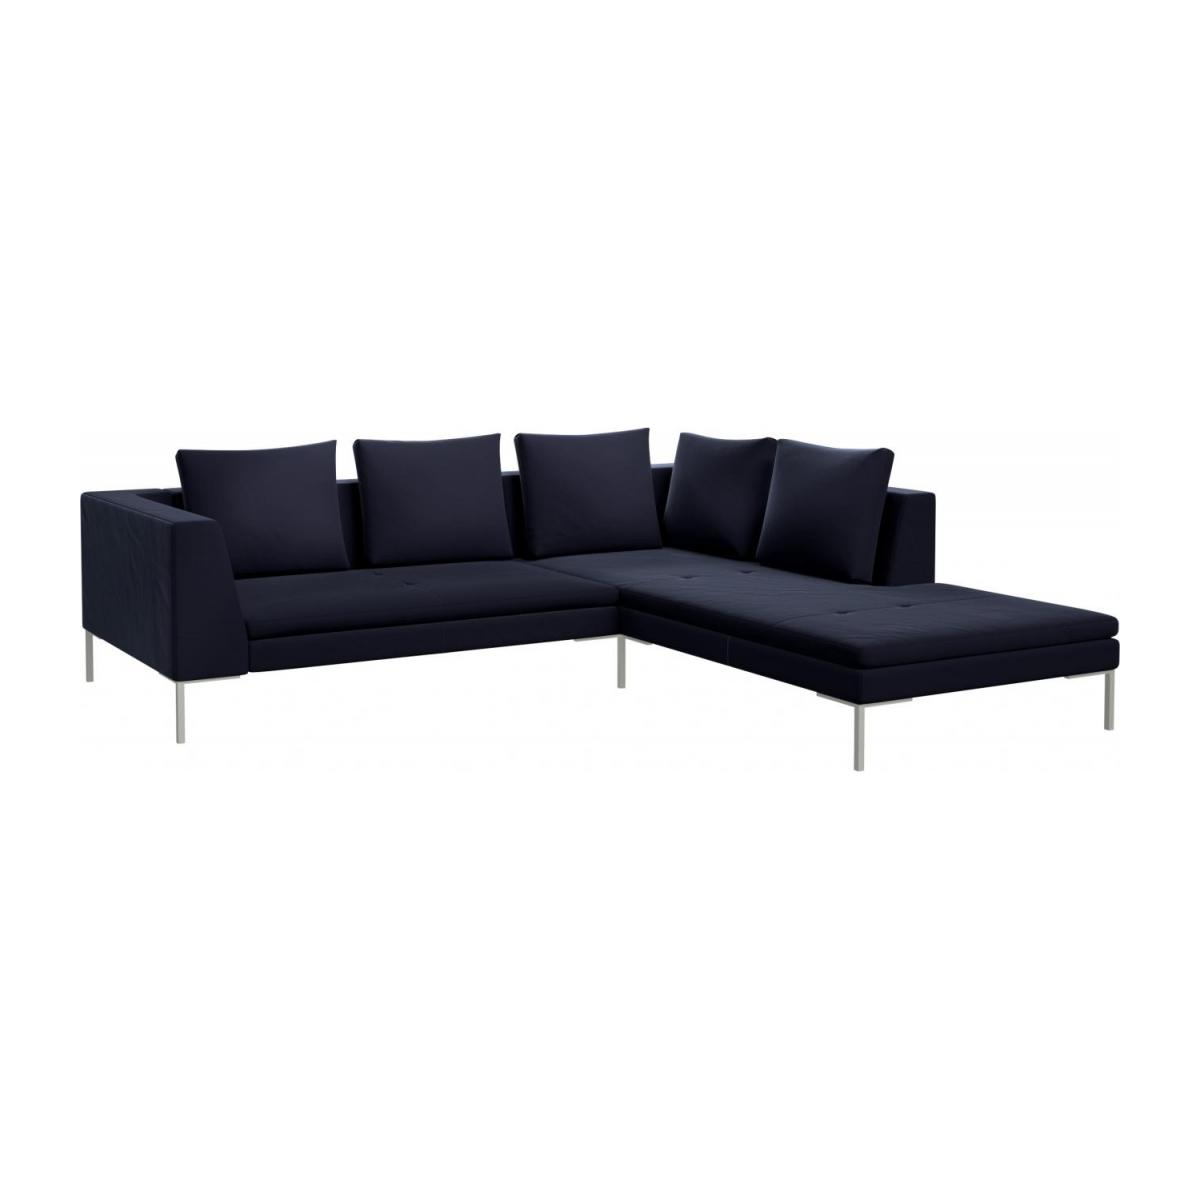 duck feather corner sofa fabric recliner canada montino 2 seater with chaise longue on the right in super velvet dark blue